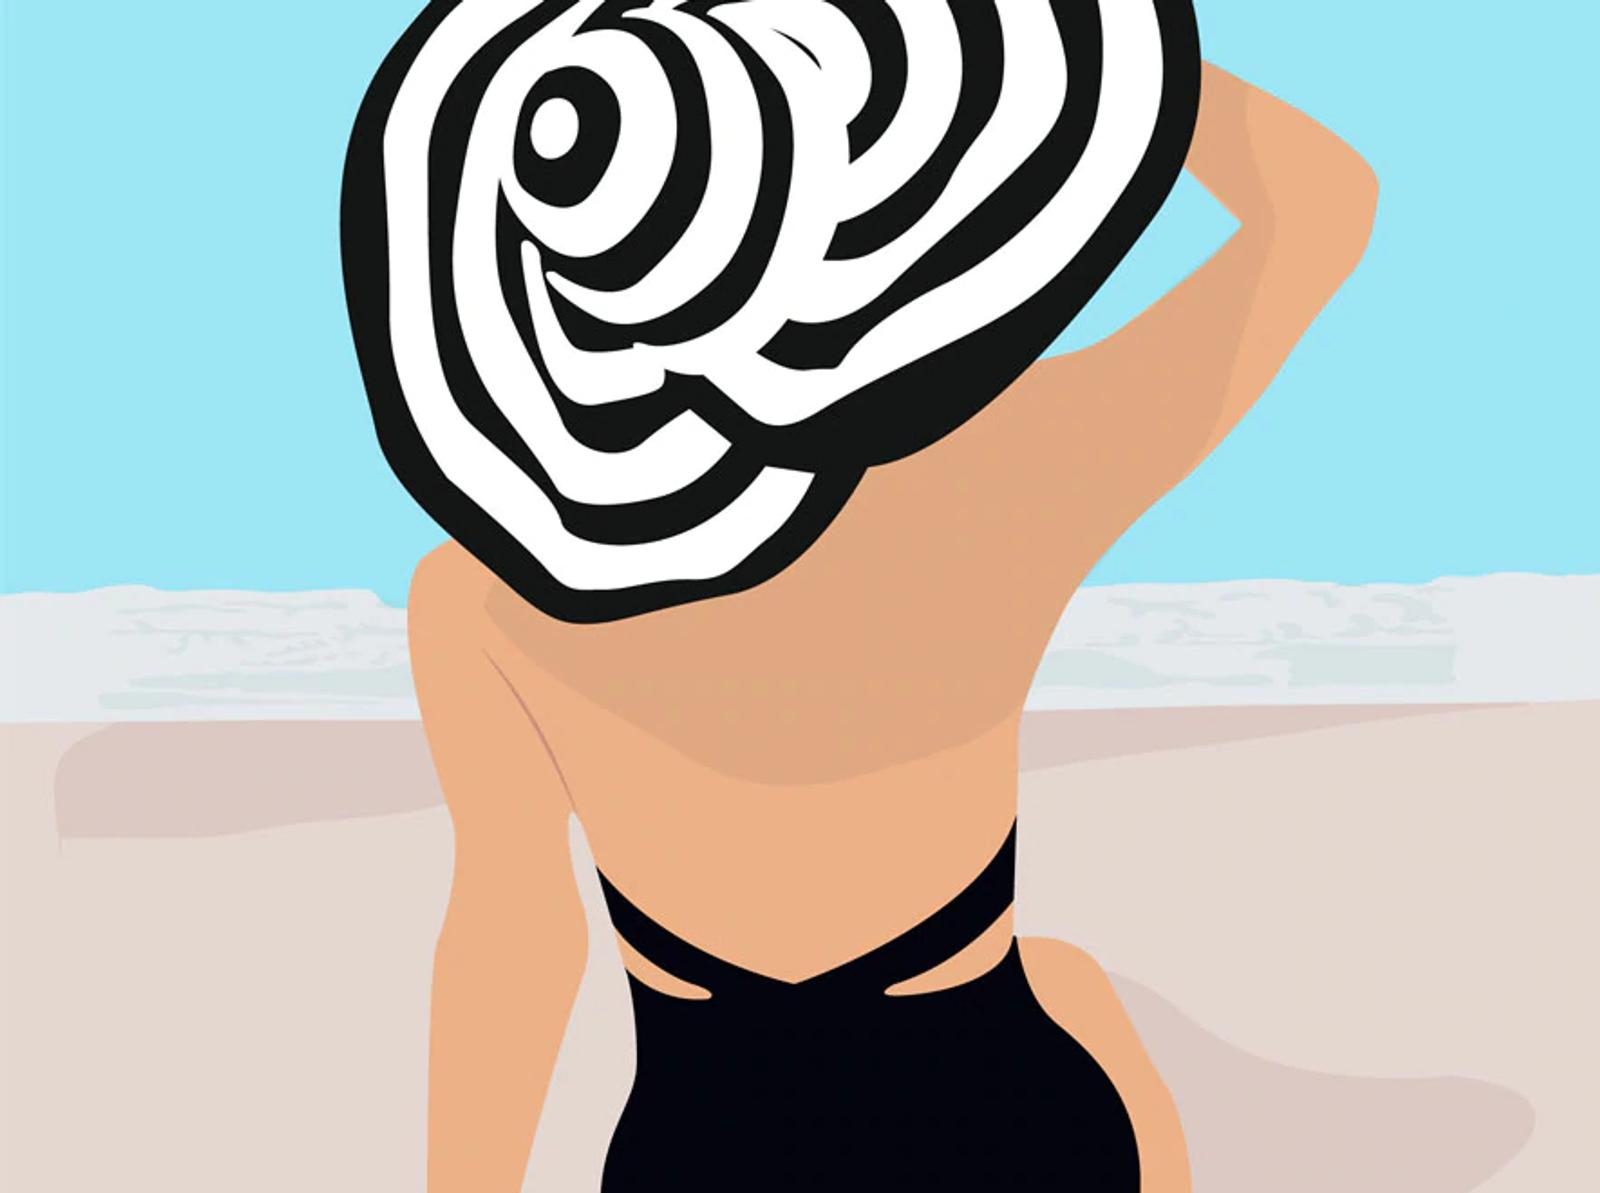 Illustration of Woman on Beach